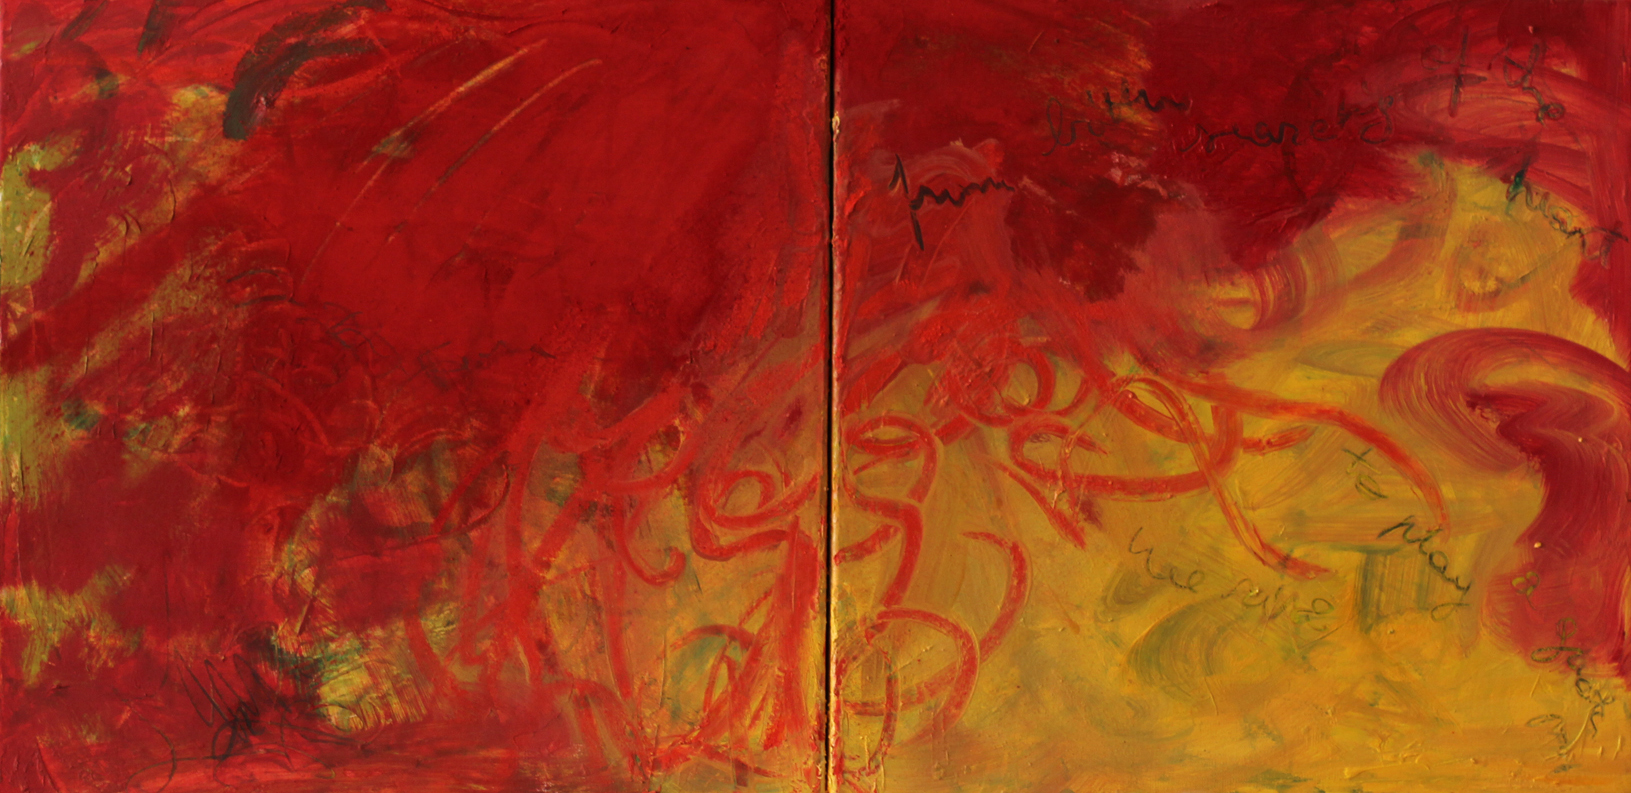 Diptych On The Floor, 2011, oil and dry pigment on canvas, 30 cm x 60 cm